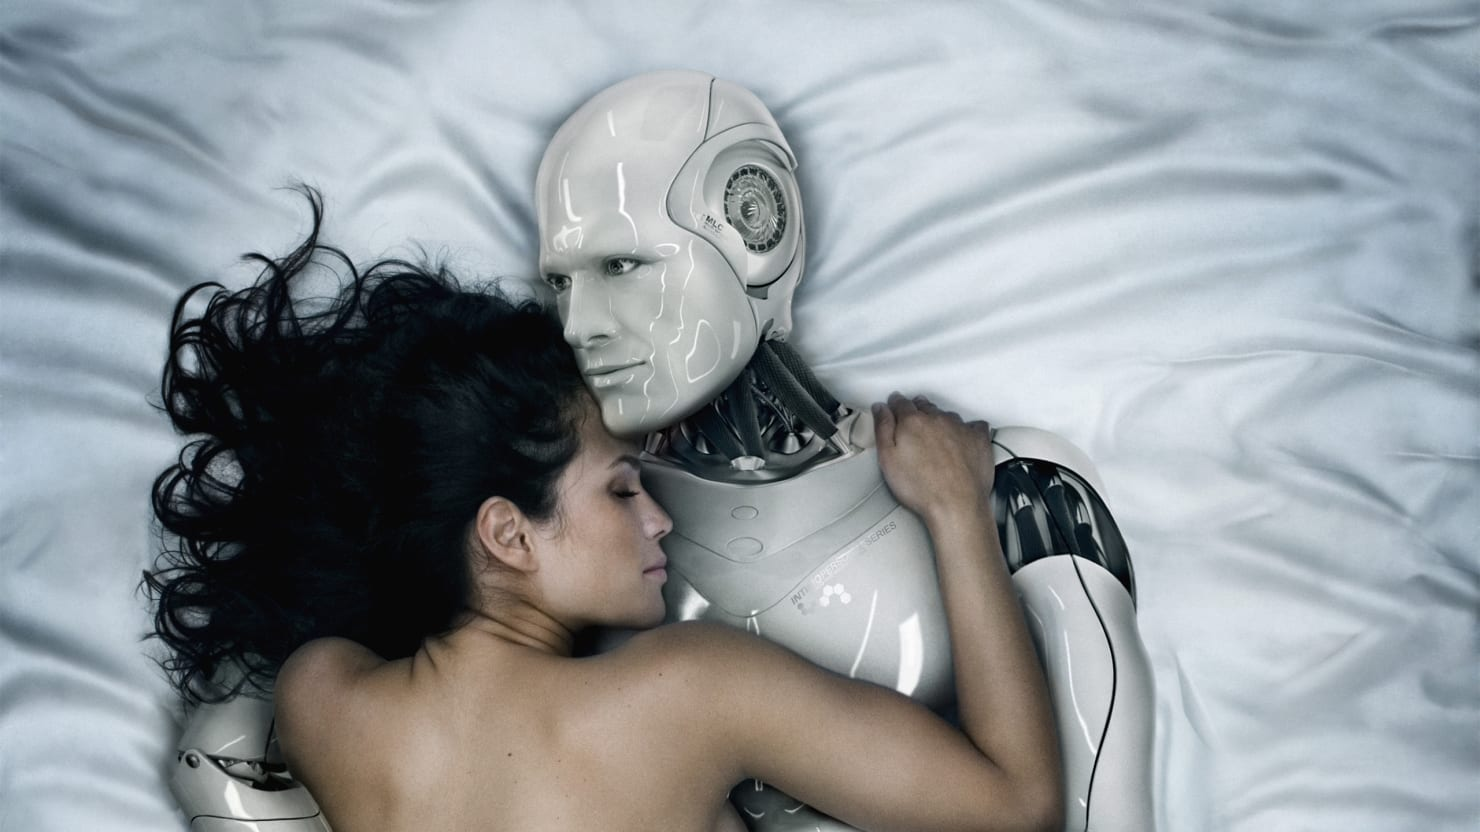 Sex In 2050: More Robots, Less Humans